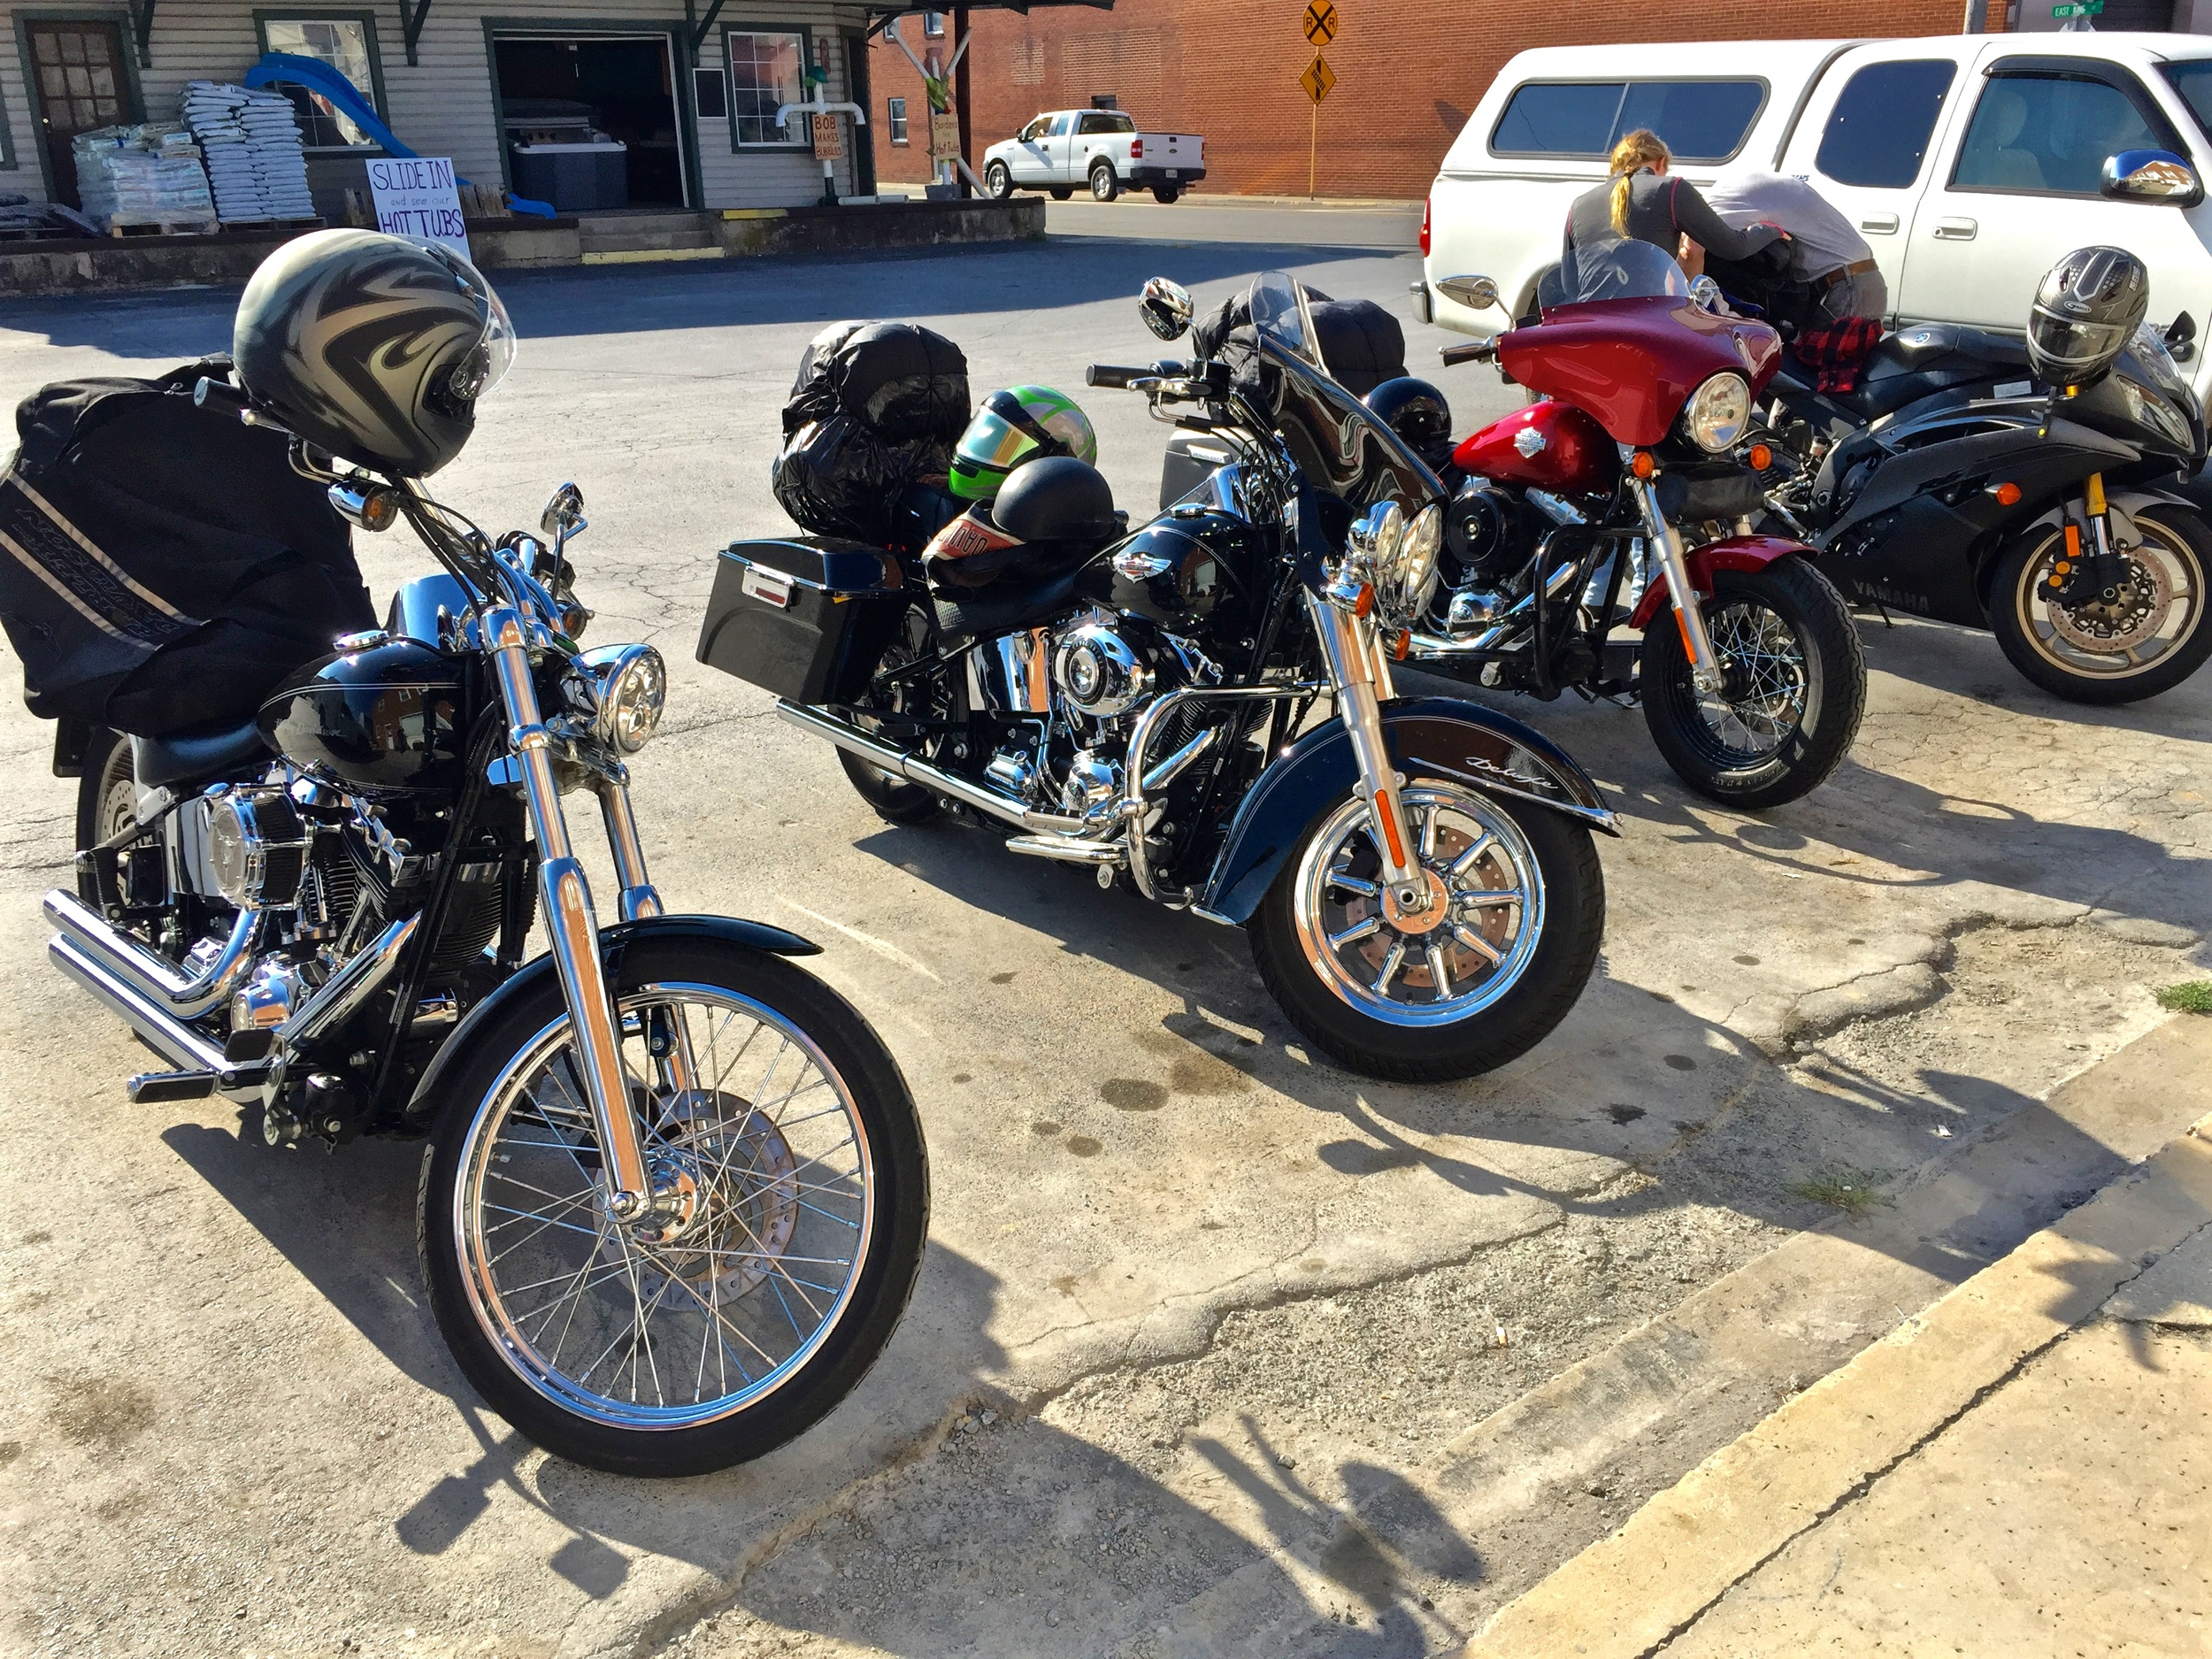 Always more fun to ride with a group.